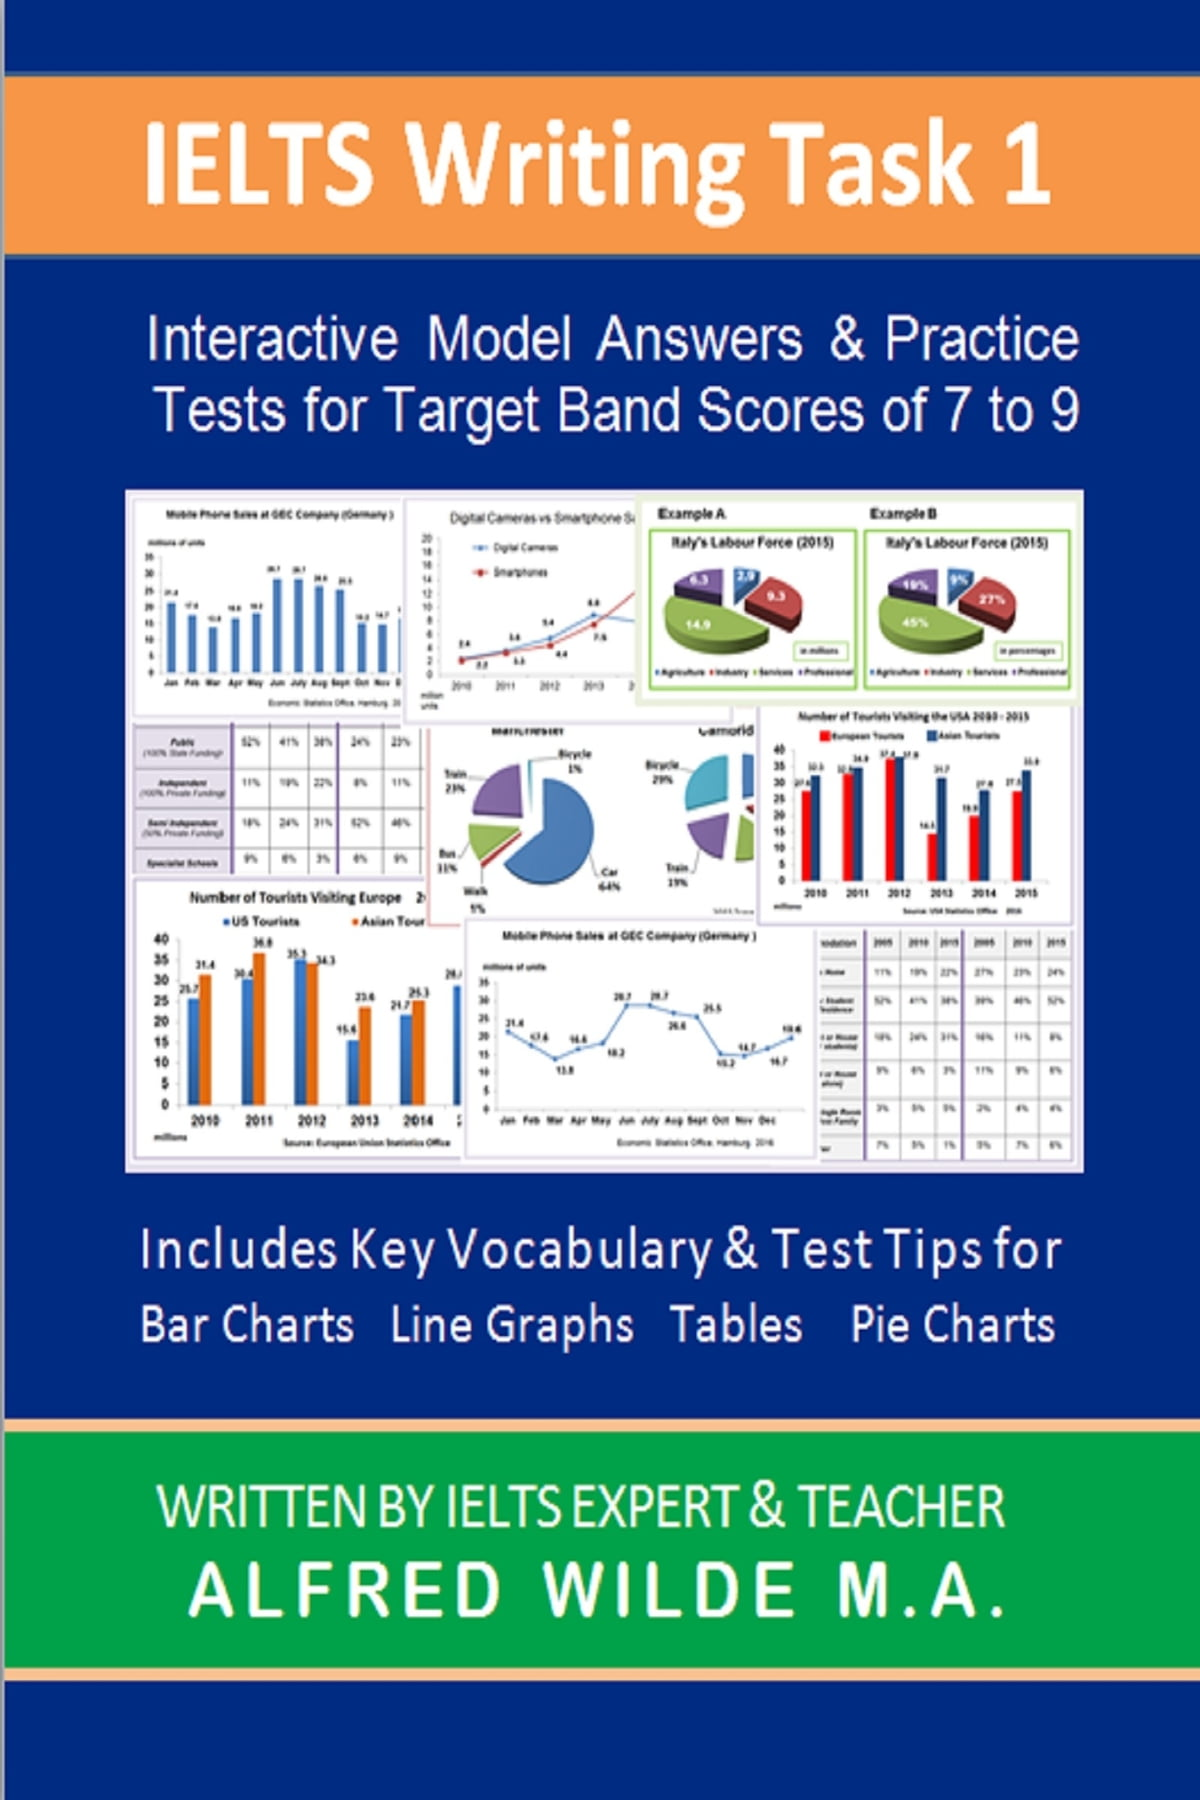 IELTS Writing Task 1 Interactive Model Answers, Practice Tests, Vocabulary  & Test Tips ebook by Alfred Wilde M A  - Rakuten Kobo